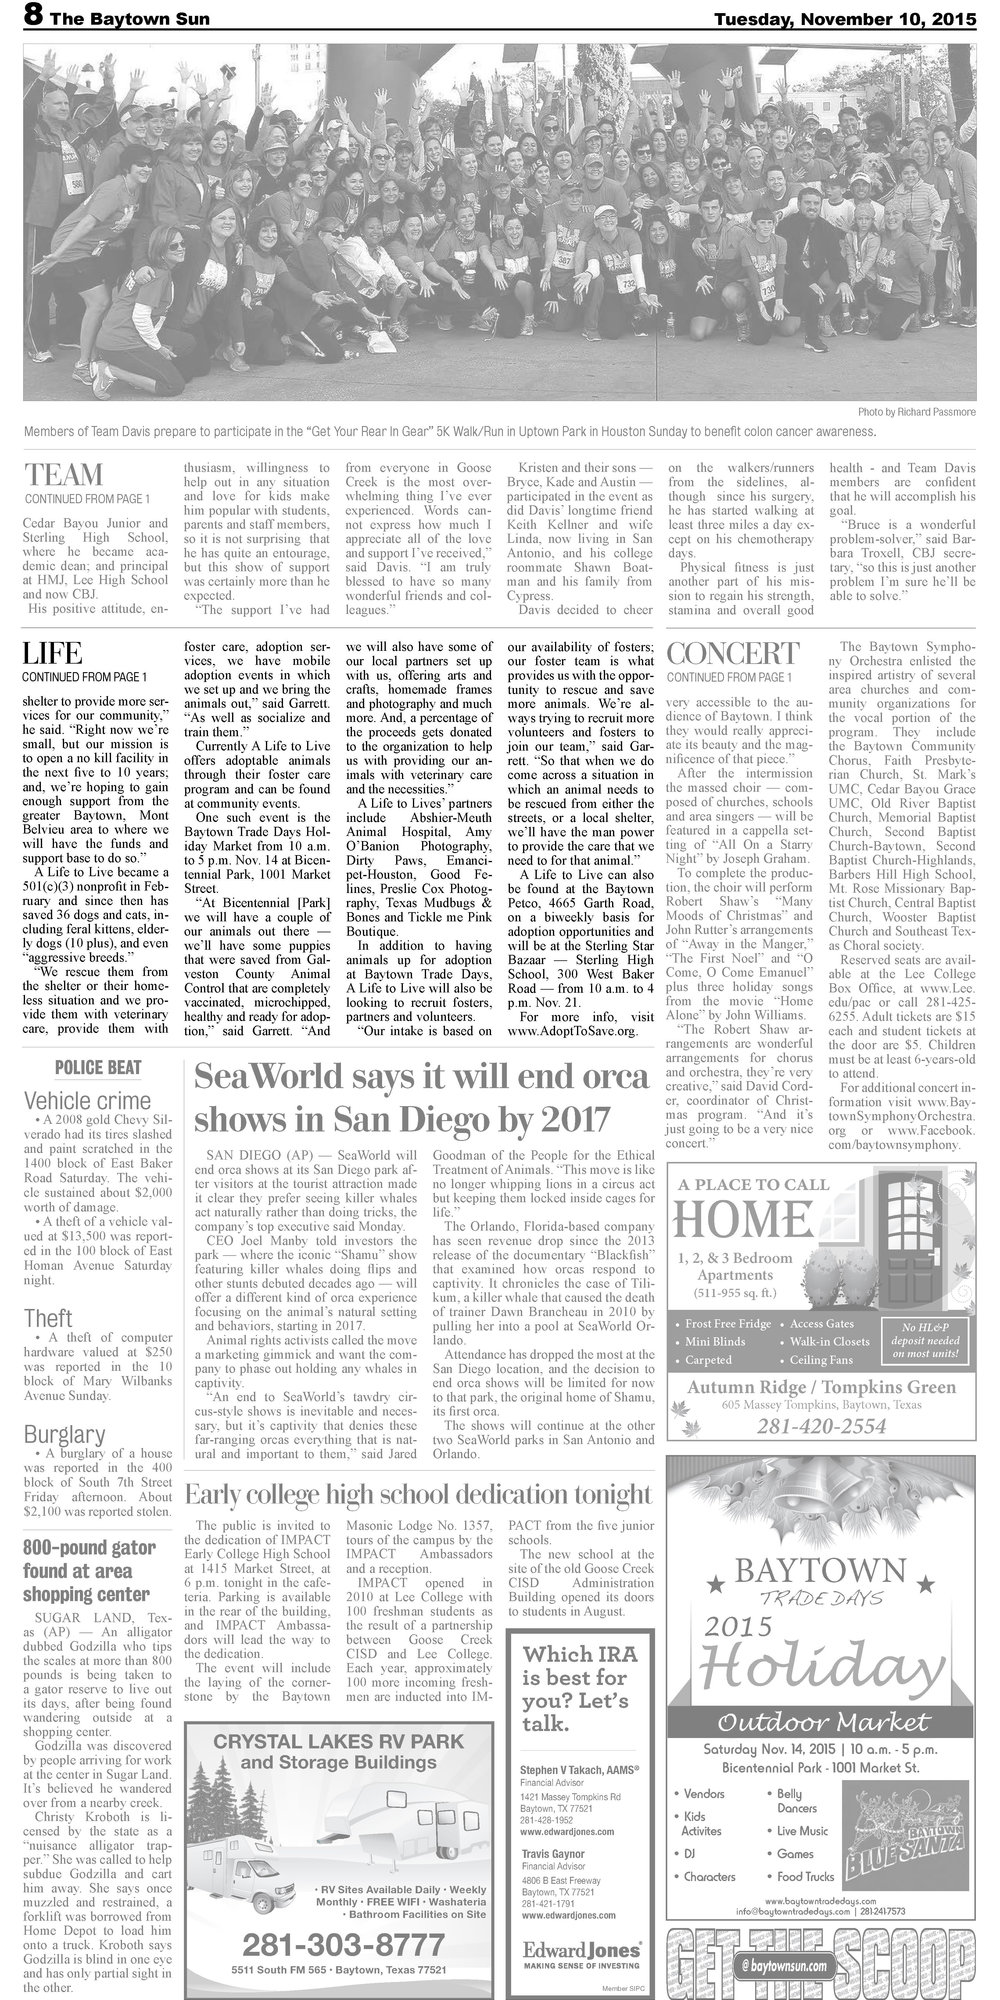 11.10.15 - Baytown Sun - A Life to Live Overview - Page 2.jpg